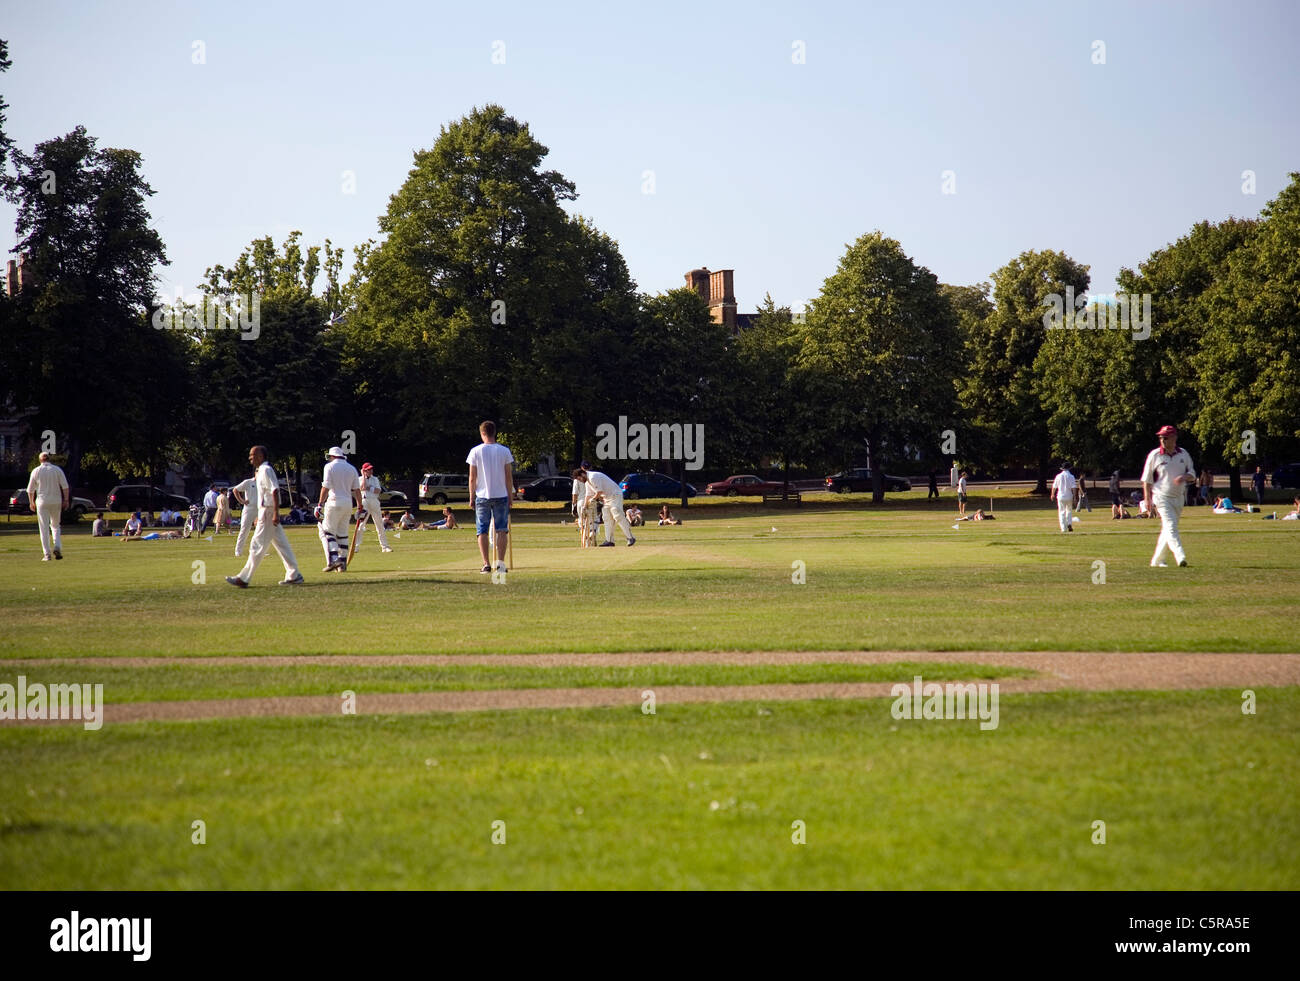 Cricket Game on Richmond Green - Stock Image